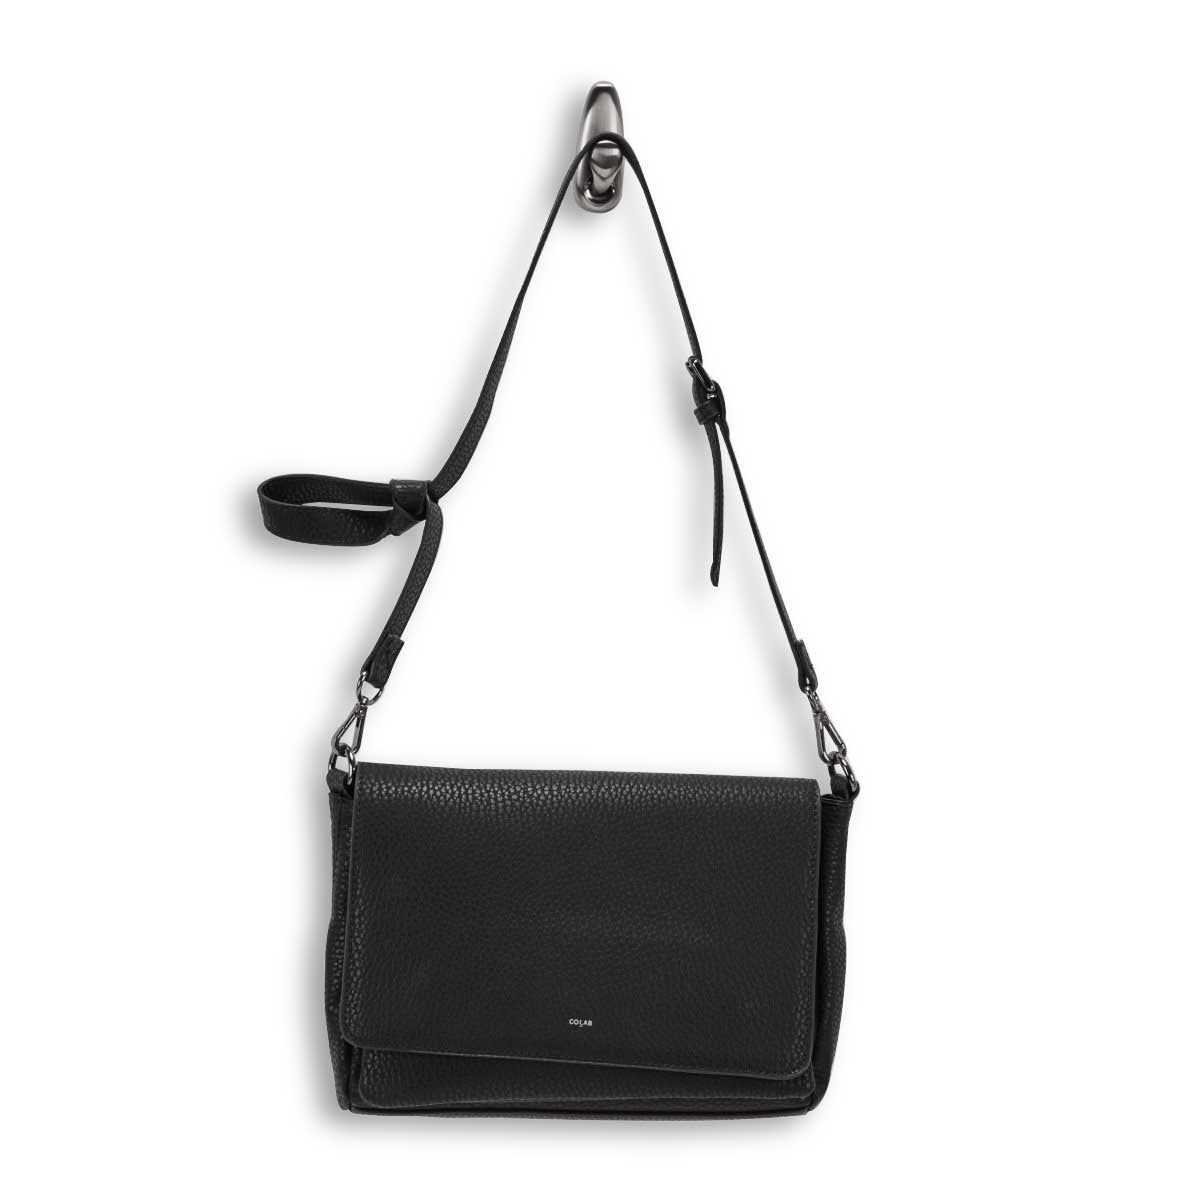 Women's 6110 black messenger crossbody bag